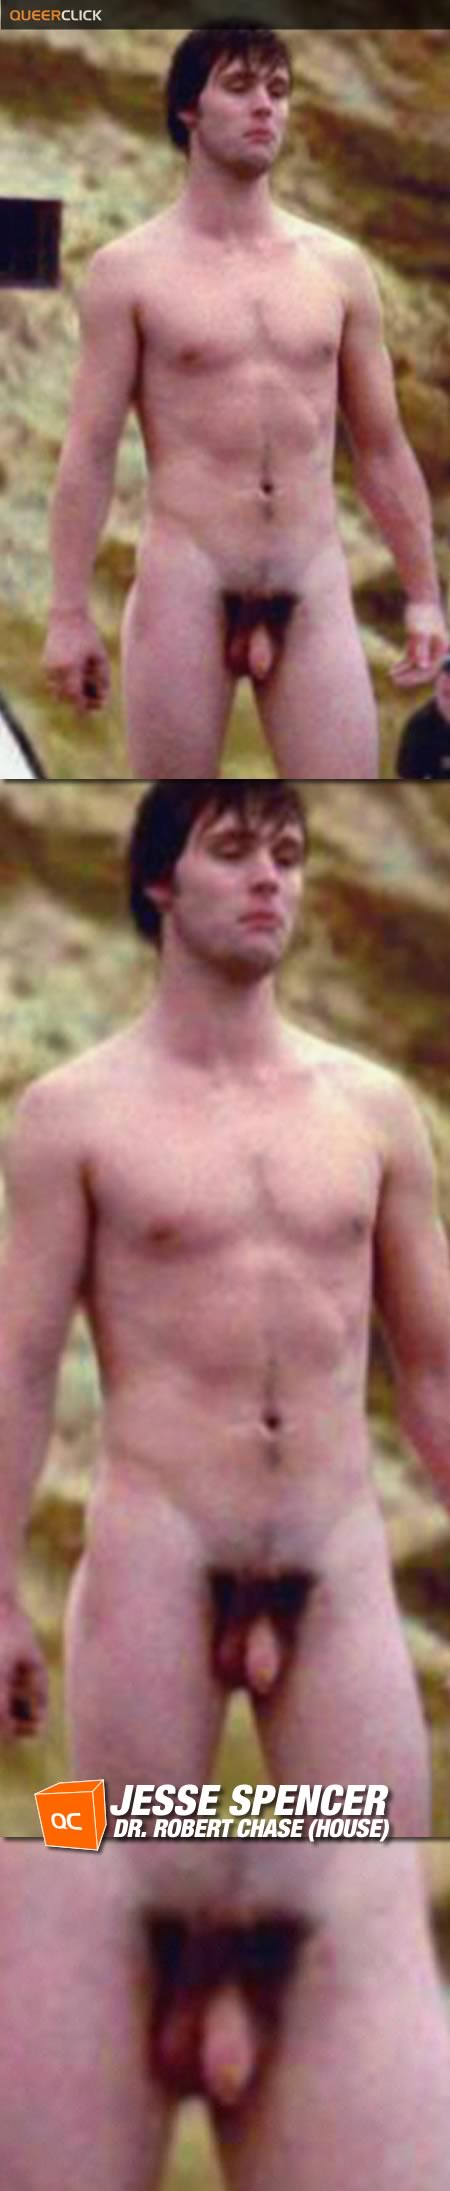 Jesse Spencer Frontal Nude